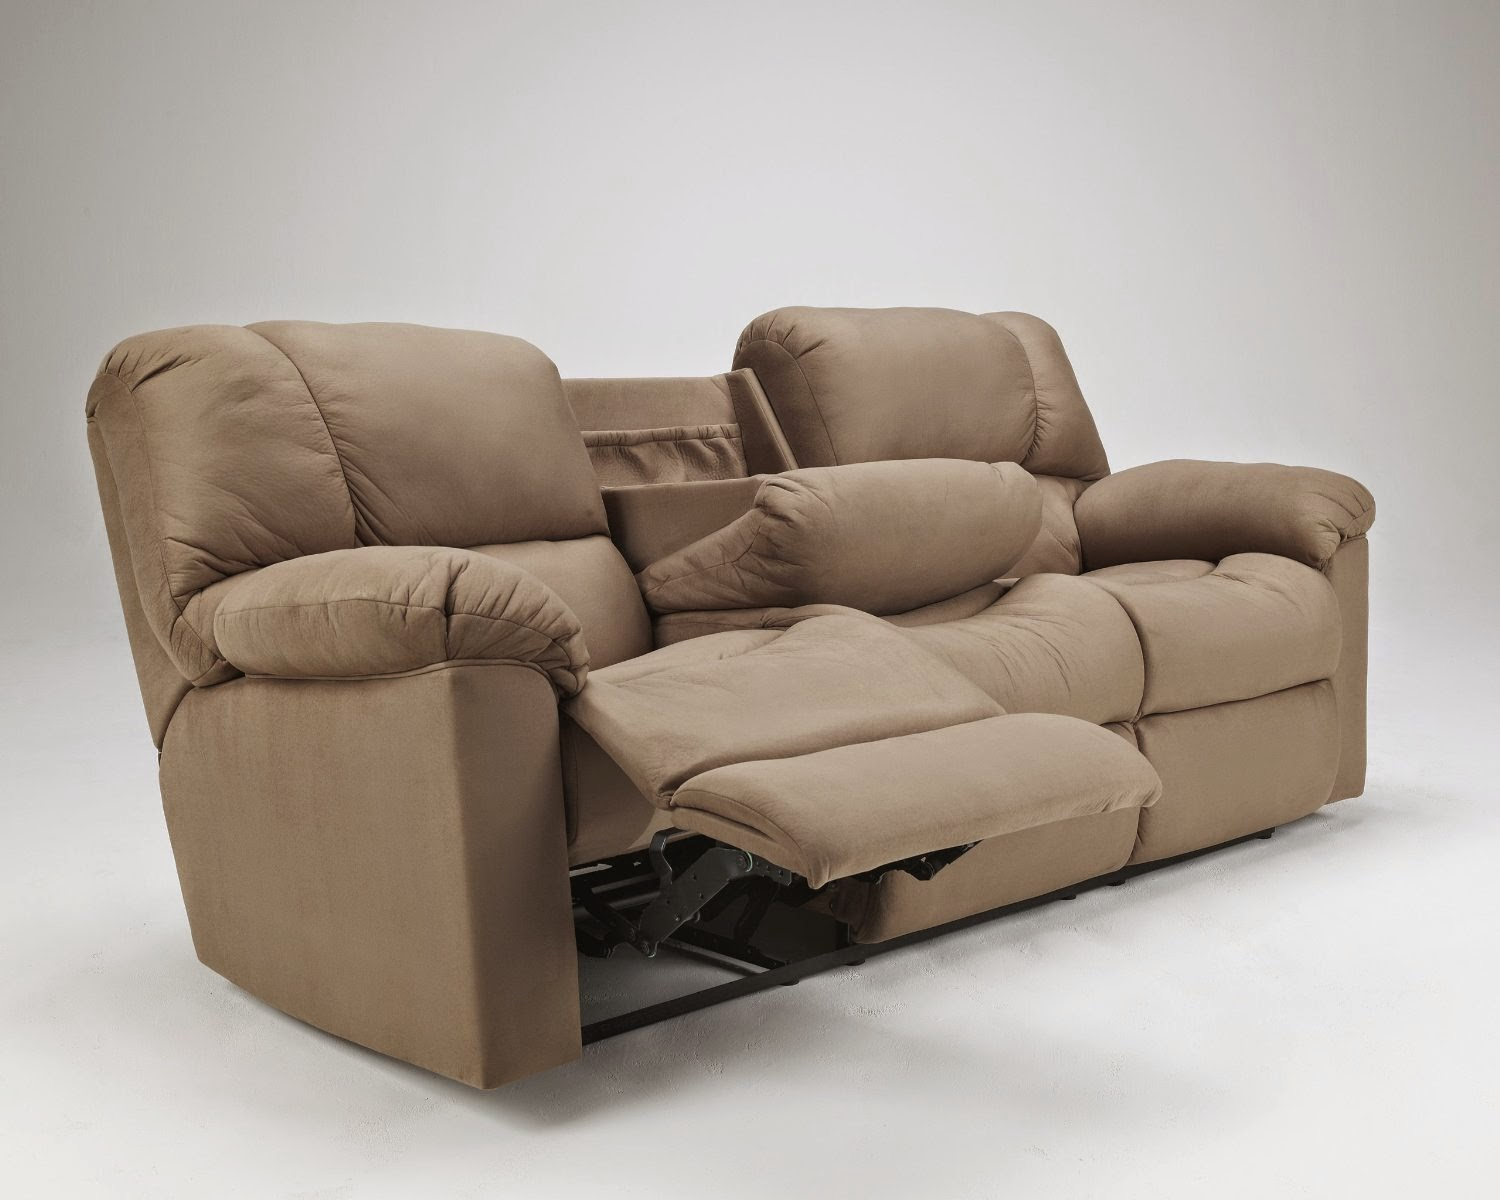 Cheap Reclining Sofas Sale: Eli Cocoa Reclining Sofa Review